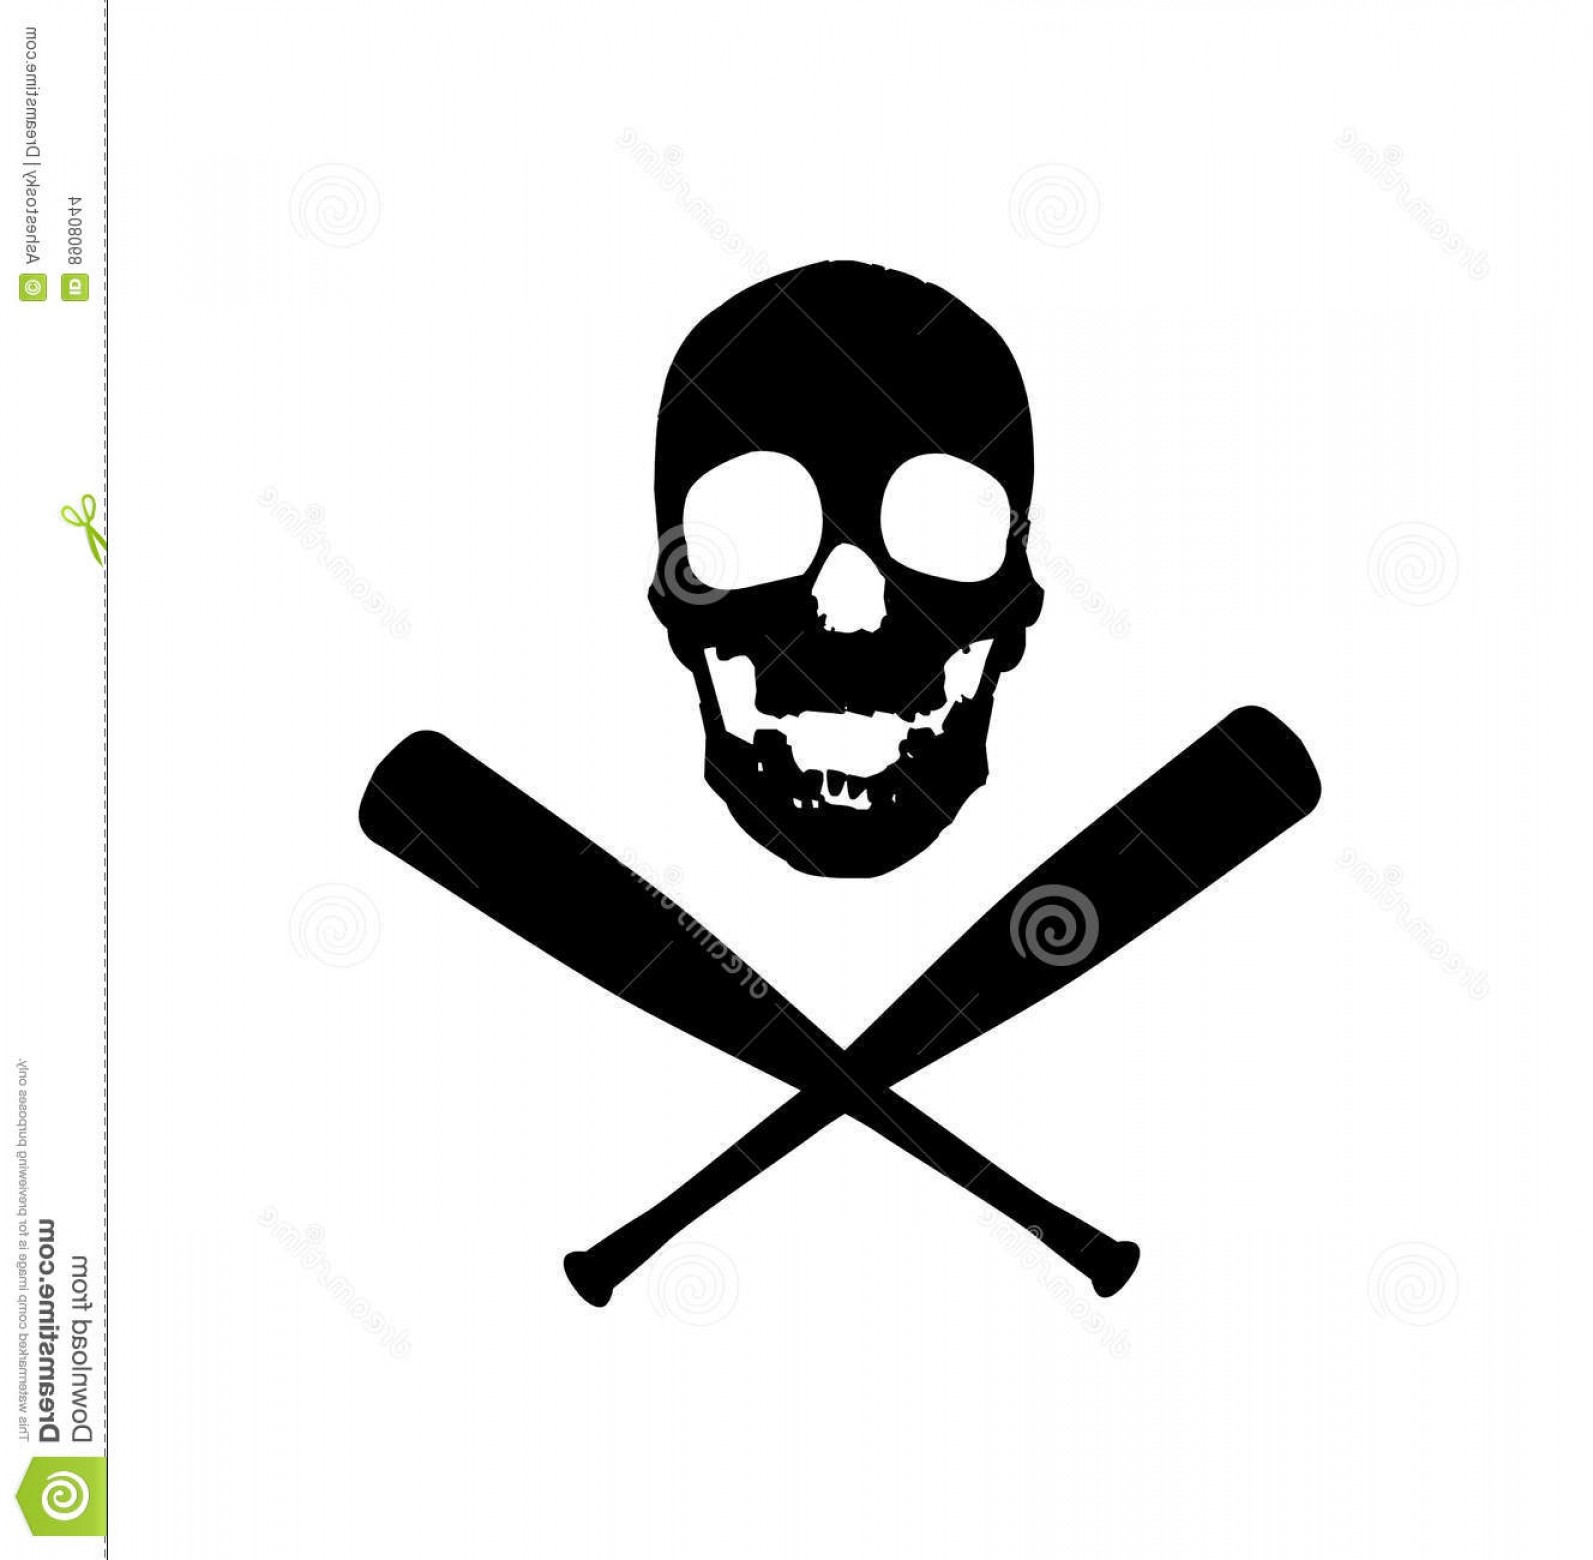 Vector Baseball Cross: Stock Images Baseball Pirates Vector Design Image